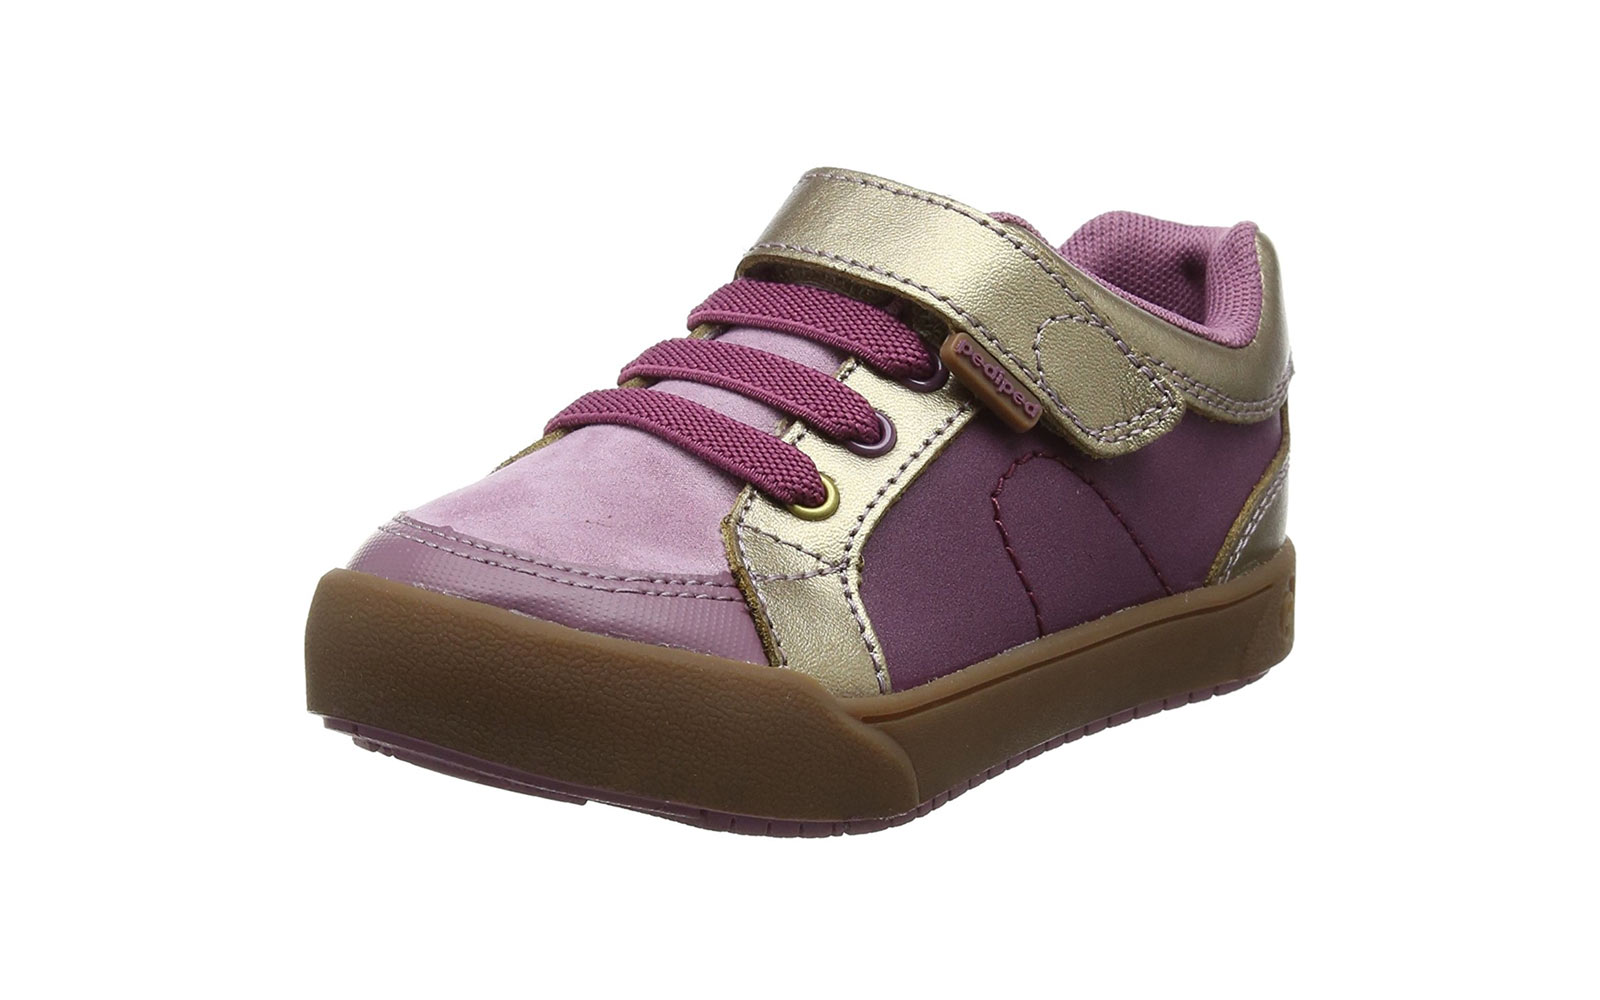 Pedi Ped purple shoe